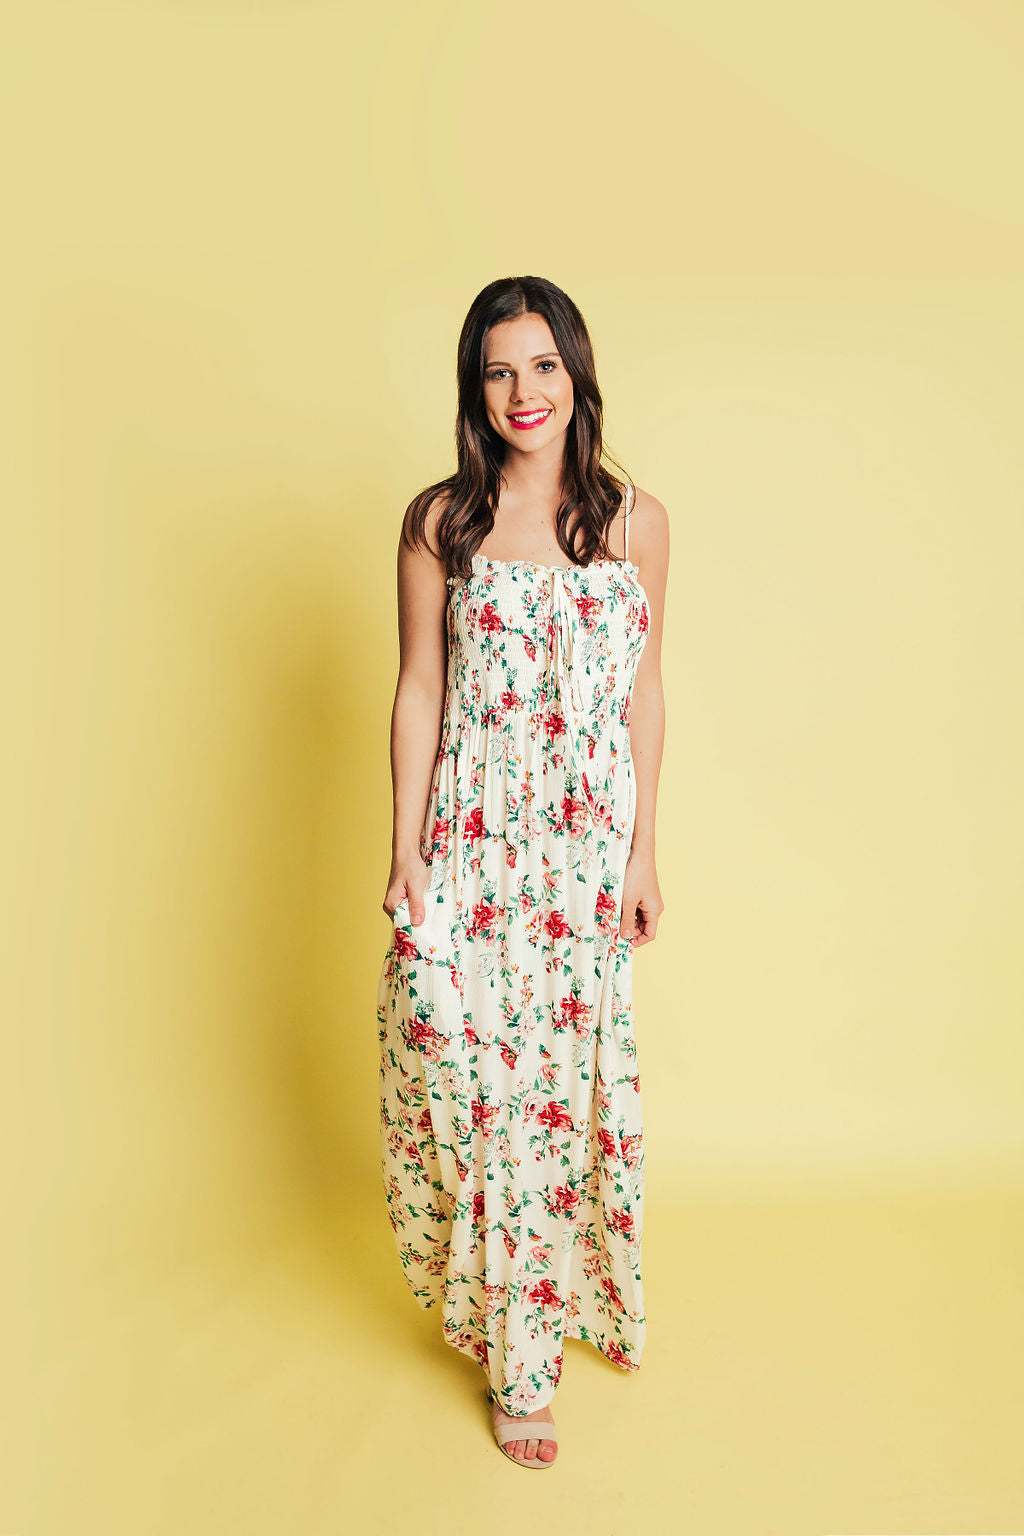 So This Is Love Smocked Floral Maxi - Ivory